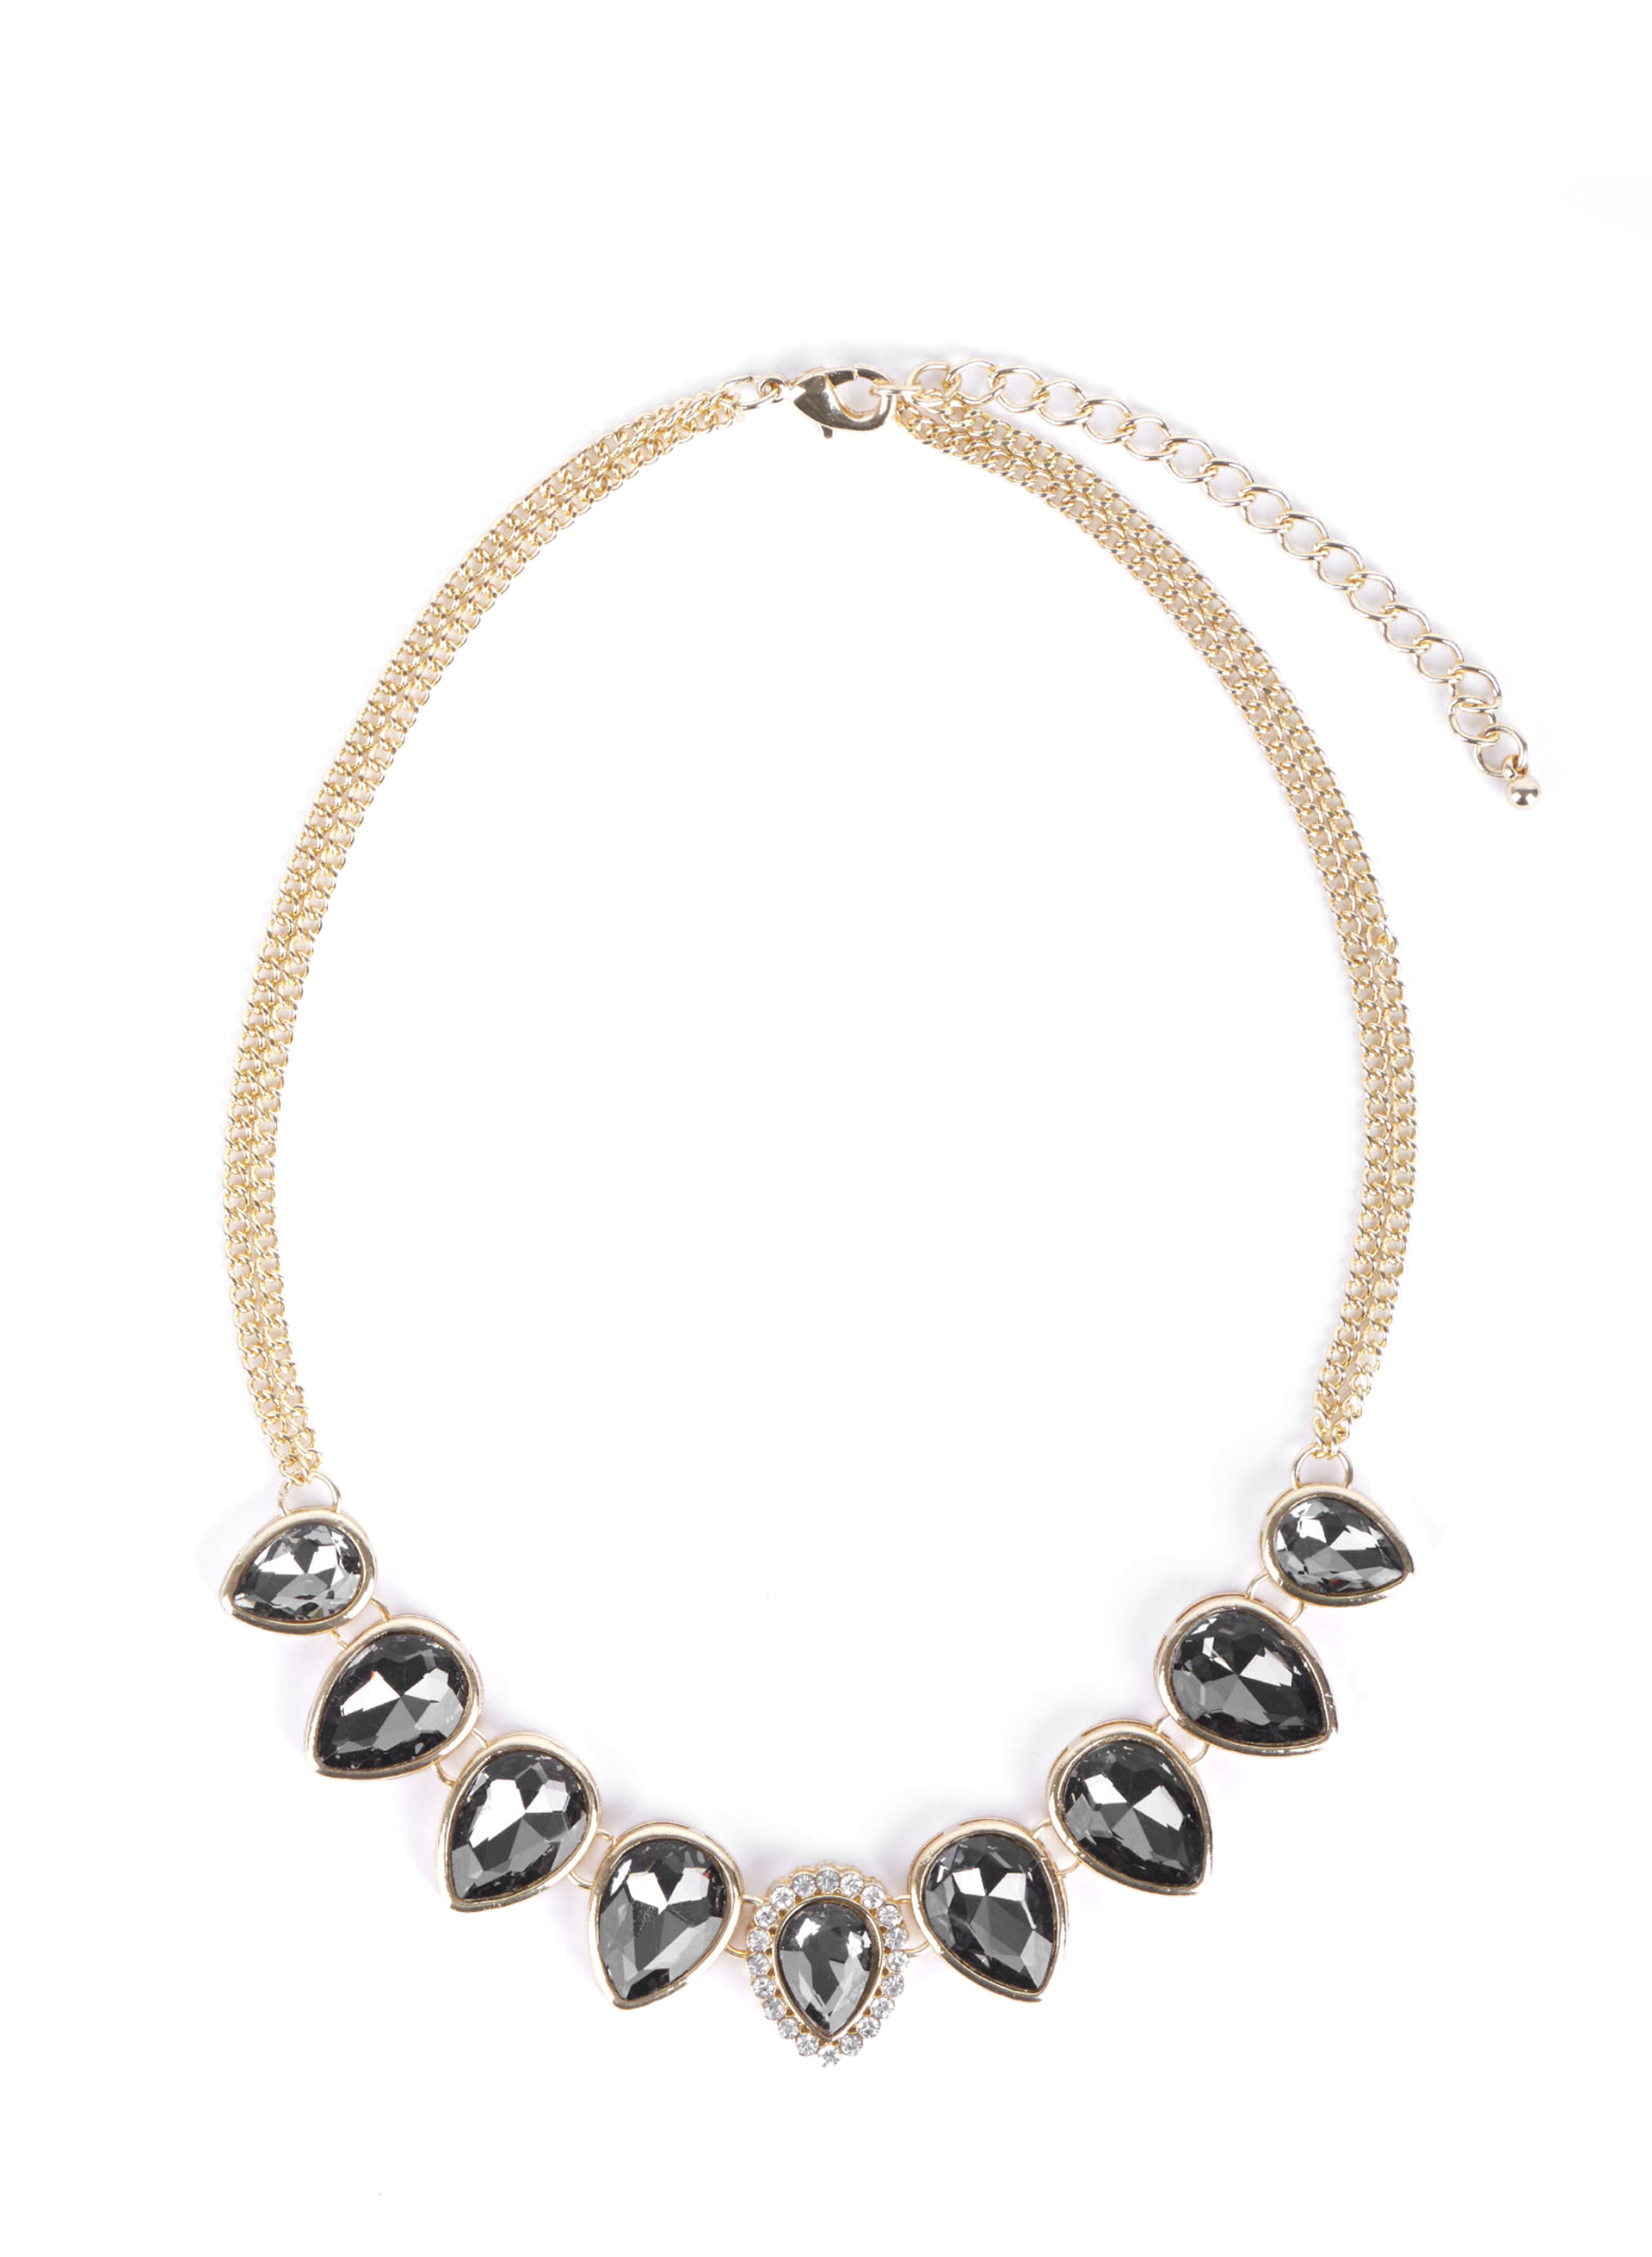 Teardrop Stone Double Chain Necklace, Grey, hi-res